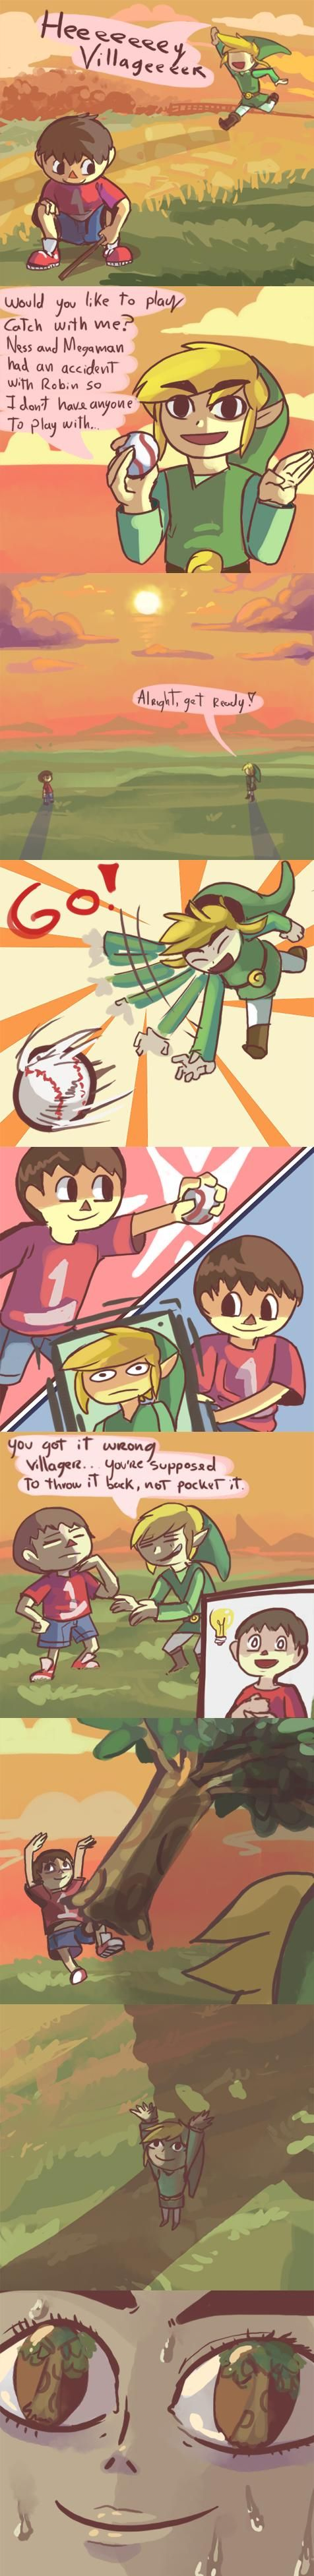 Poor Toon Link...but seriously, how much stuff is in Villager's pockets I wonder...?